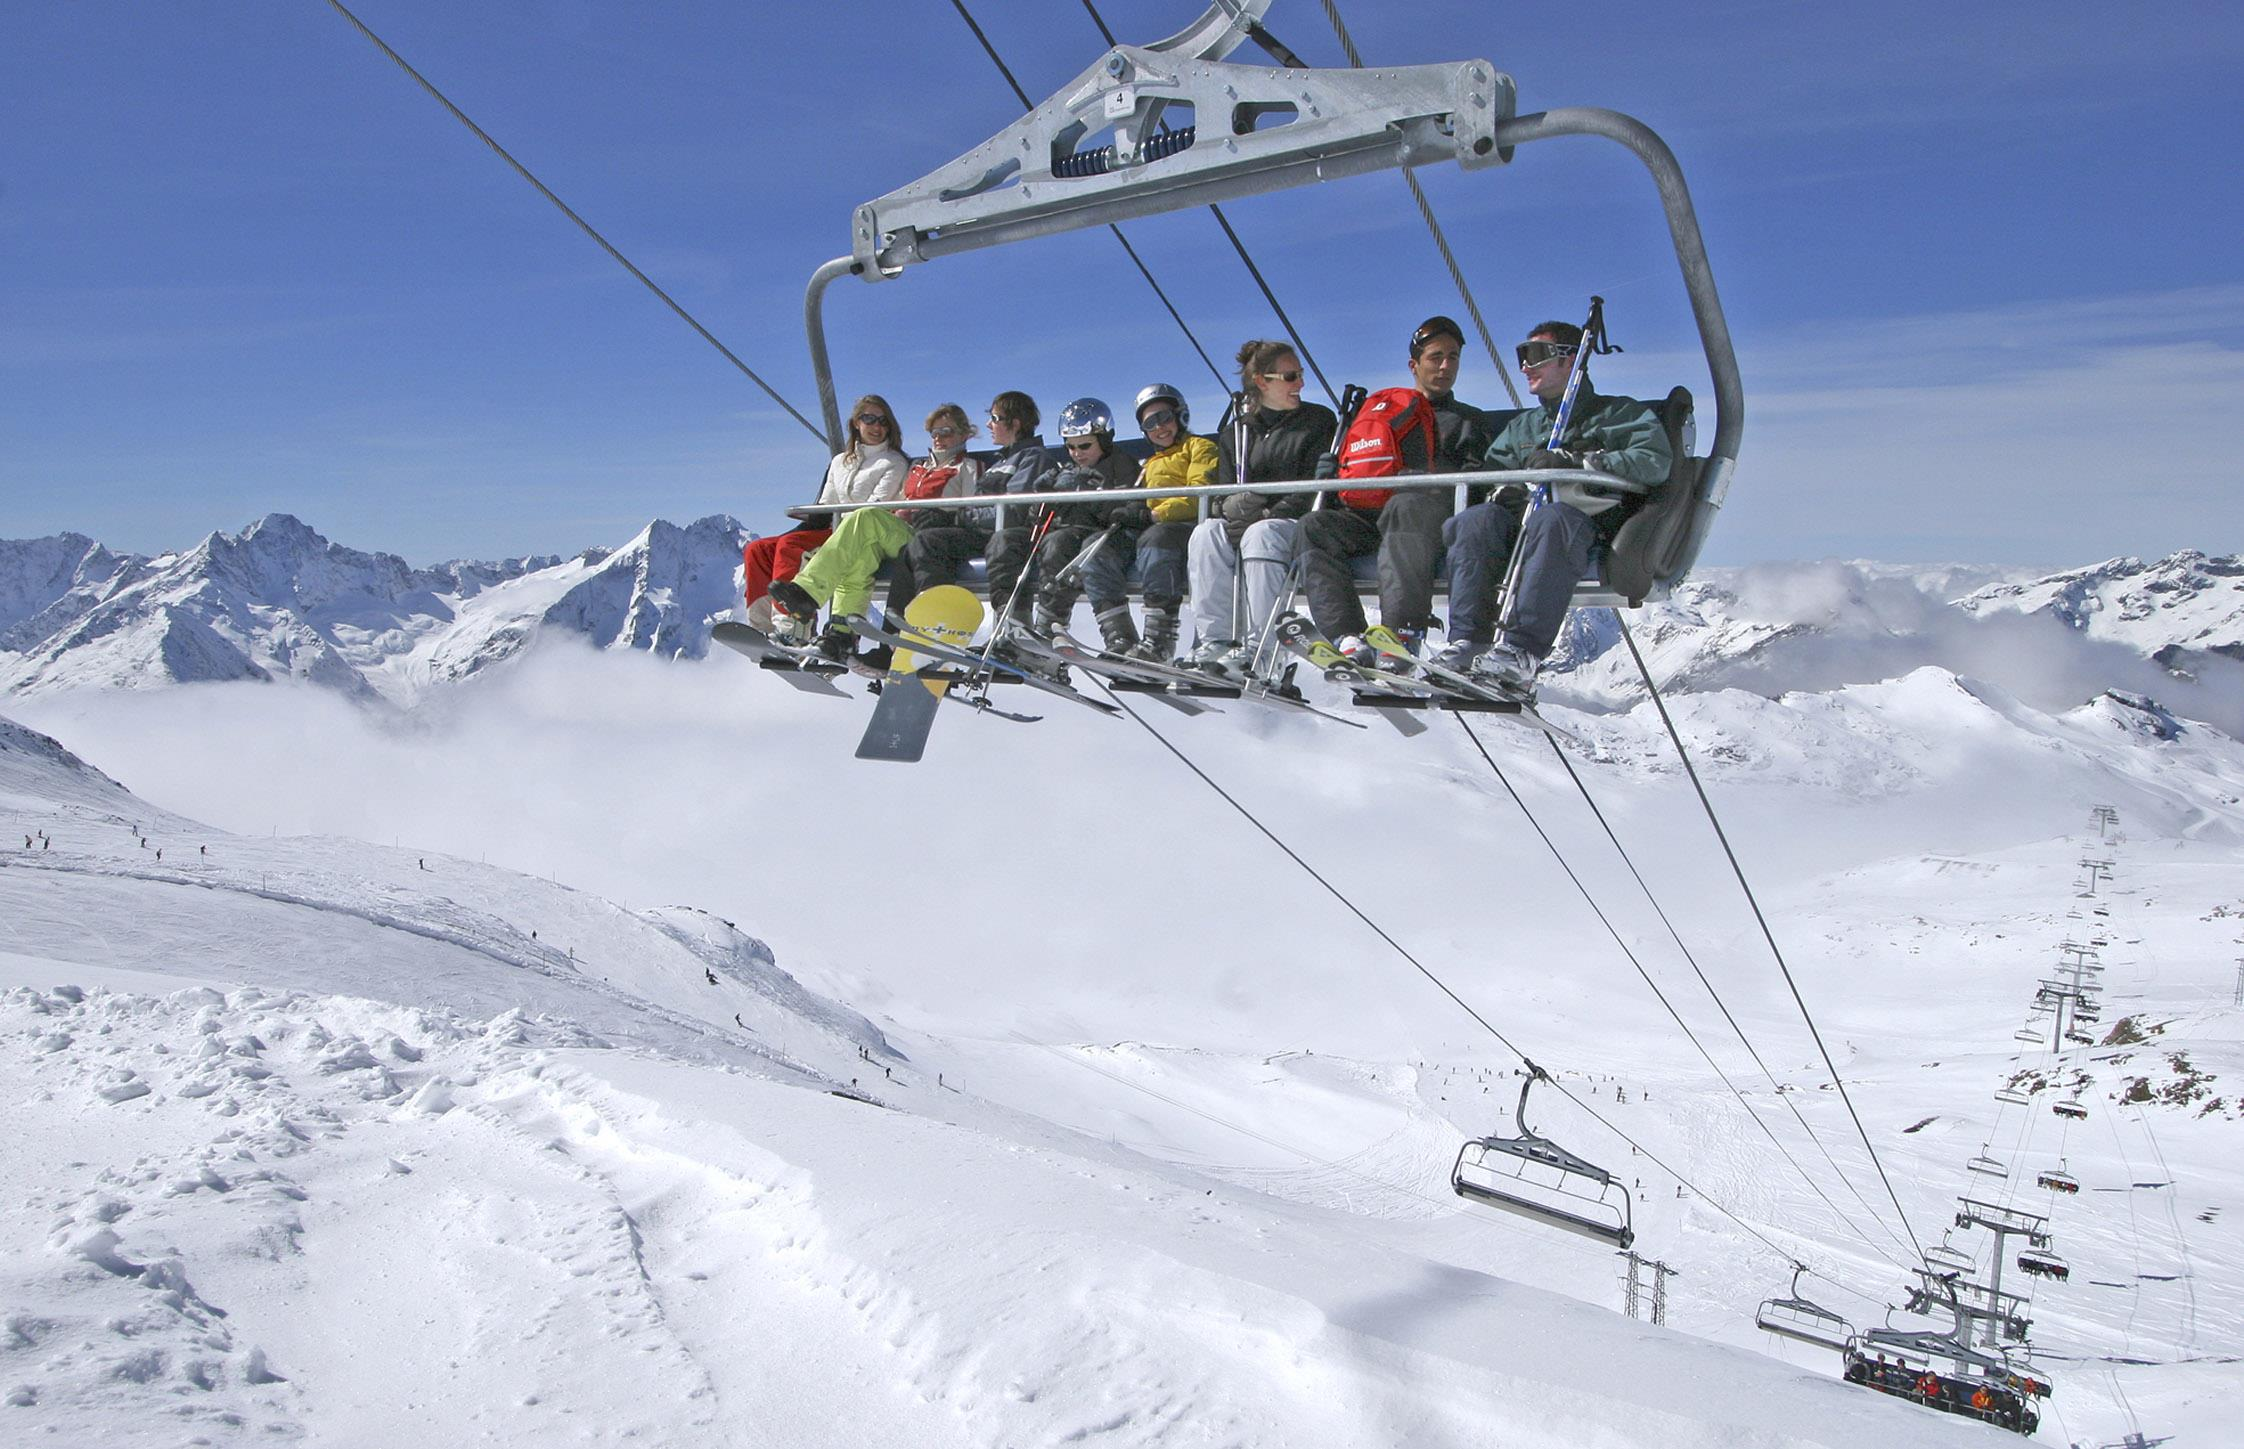 Les 2 Alpes Ski Lifts